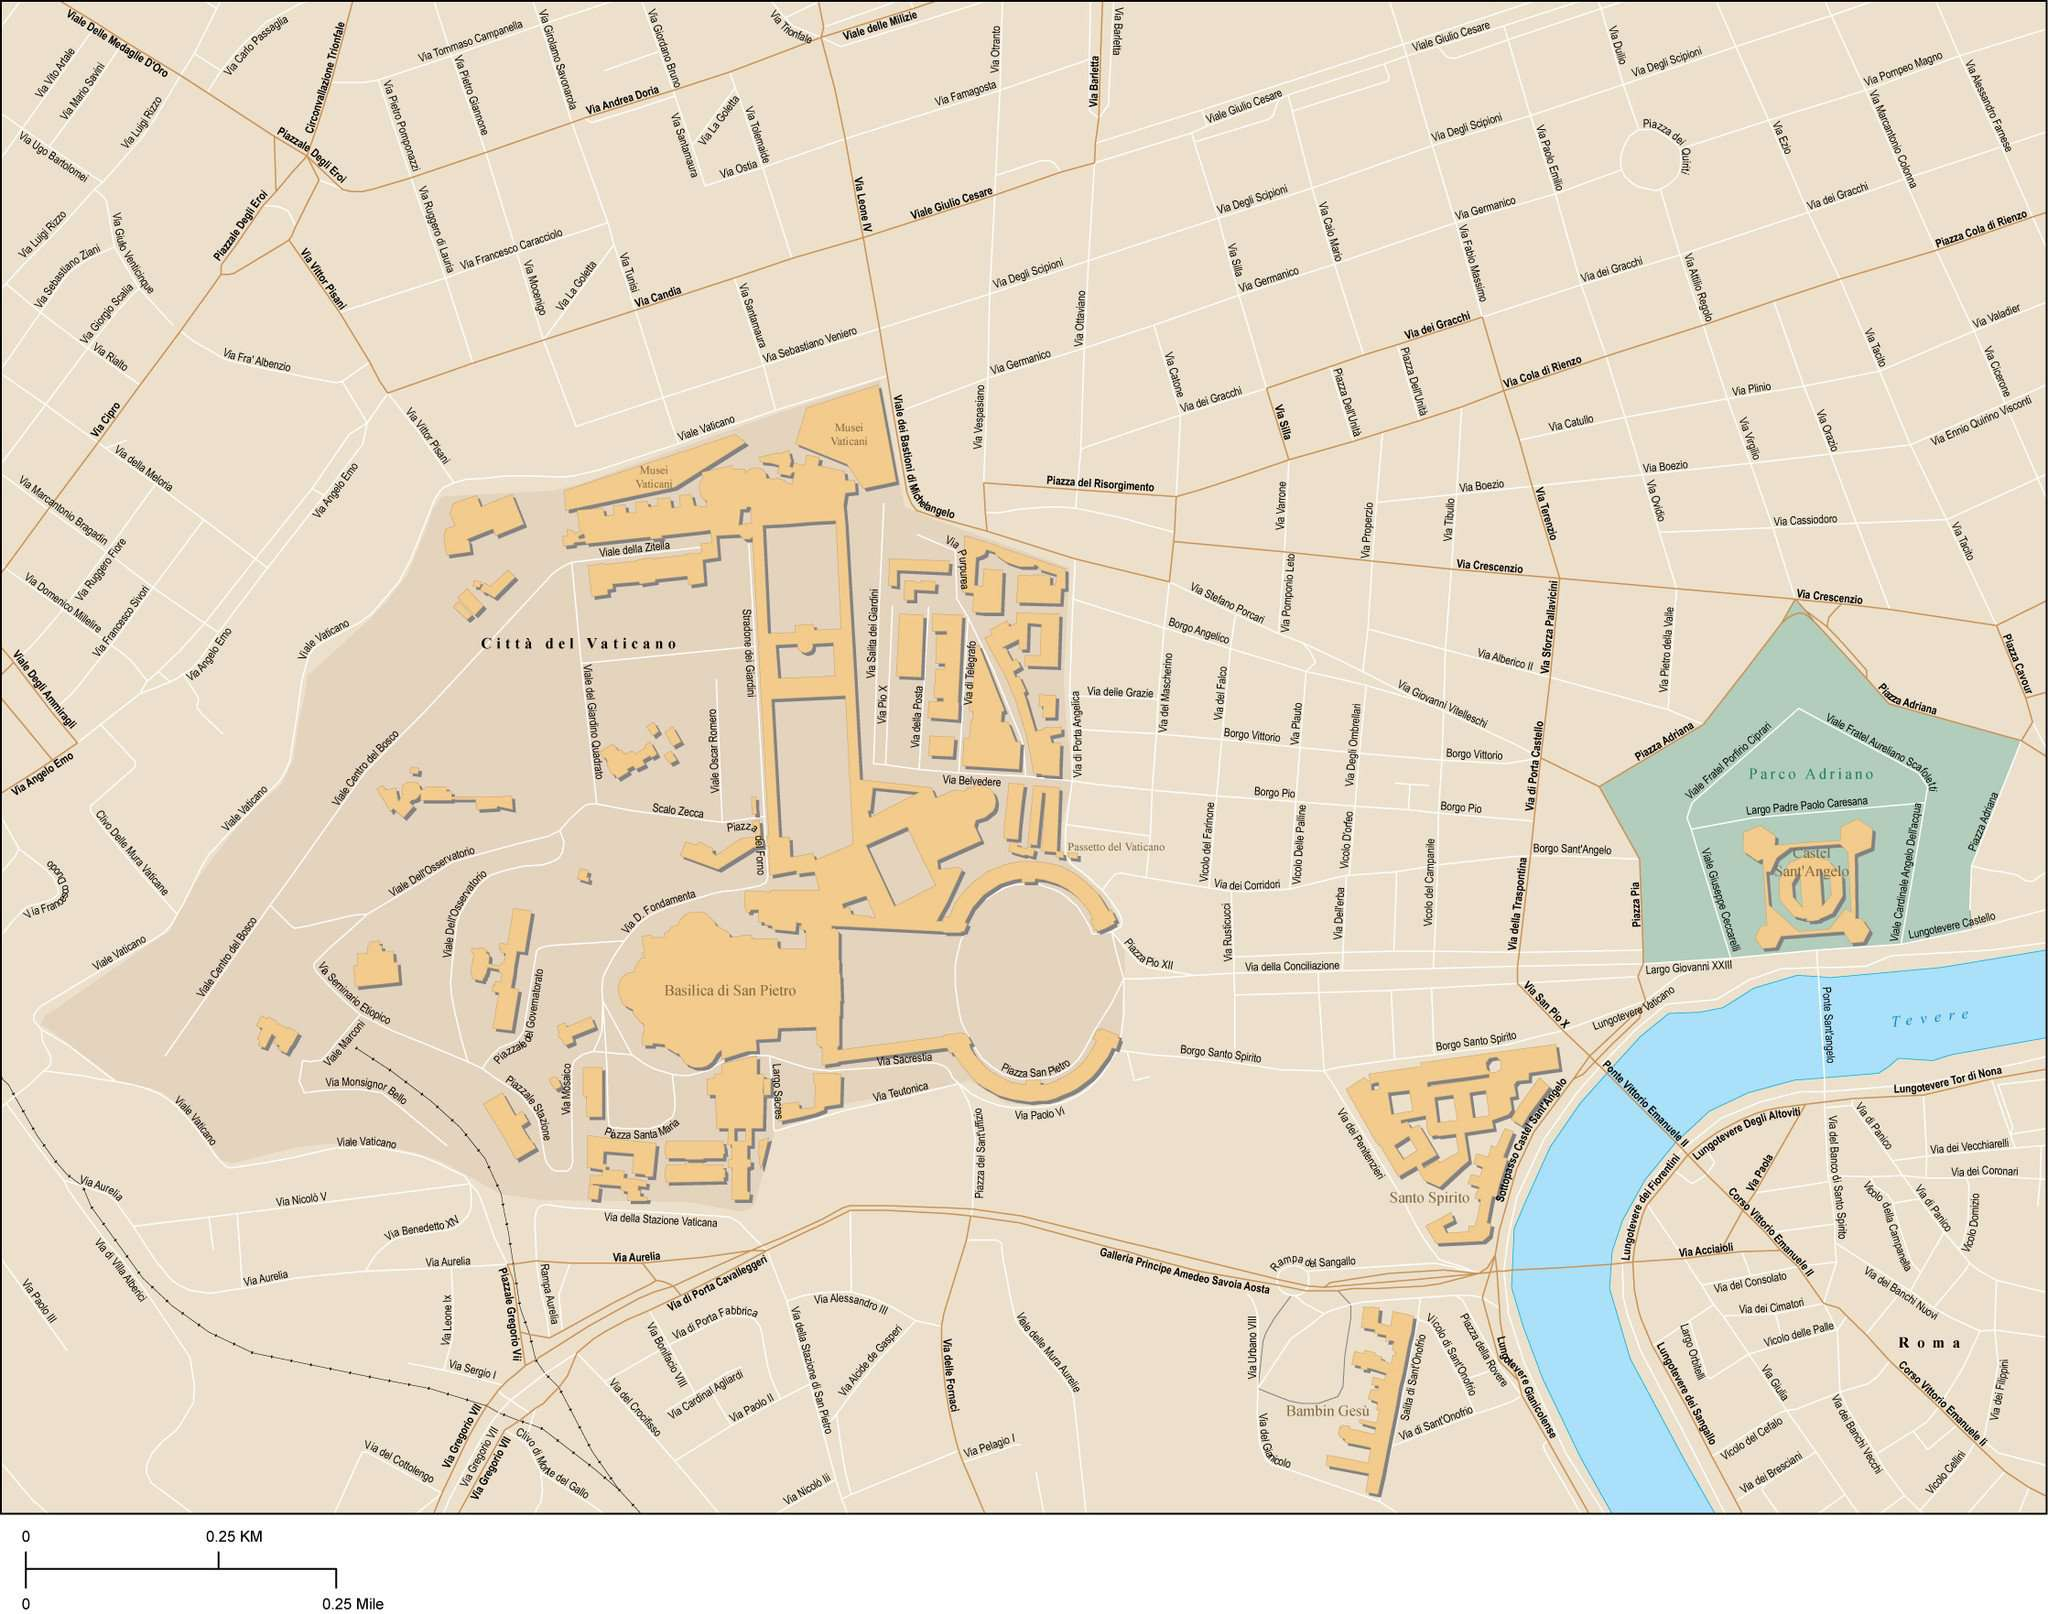 Vatican City Rome Italy Map with Local Streets